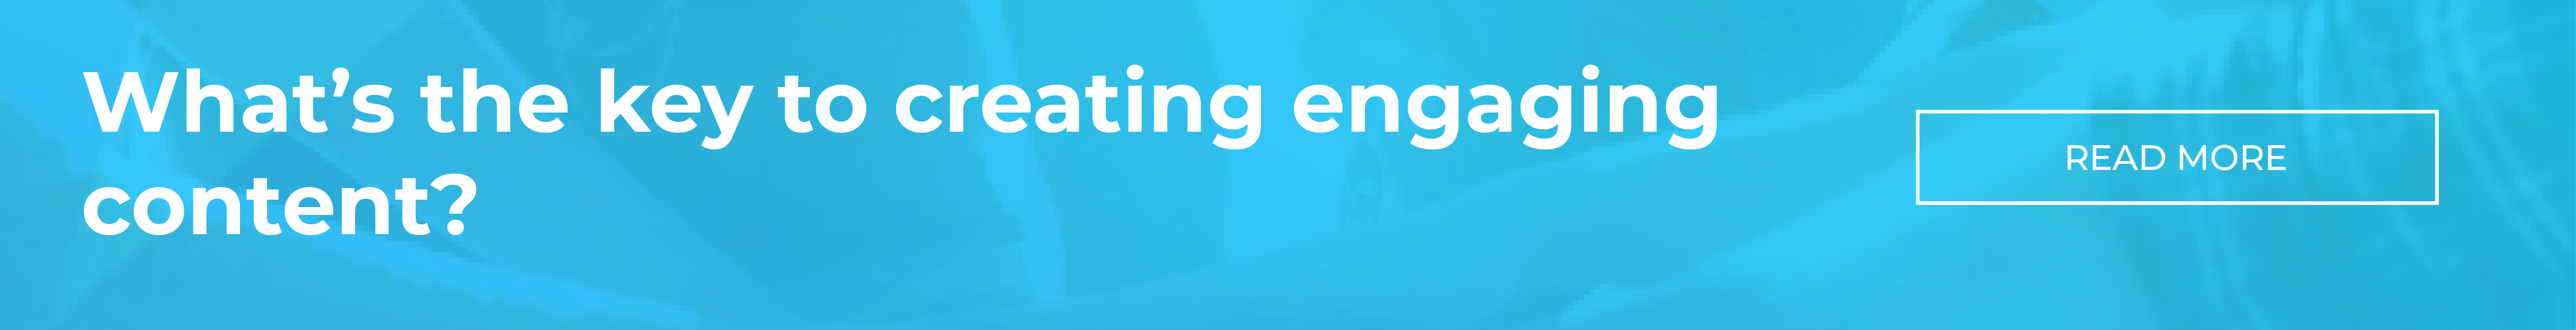 What's the key to creating engaging content?